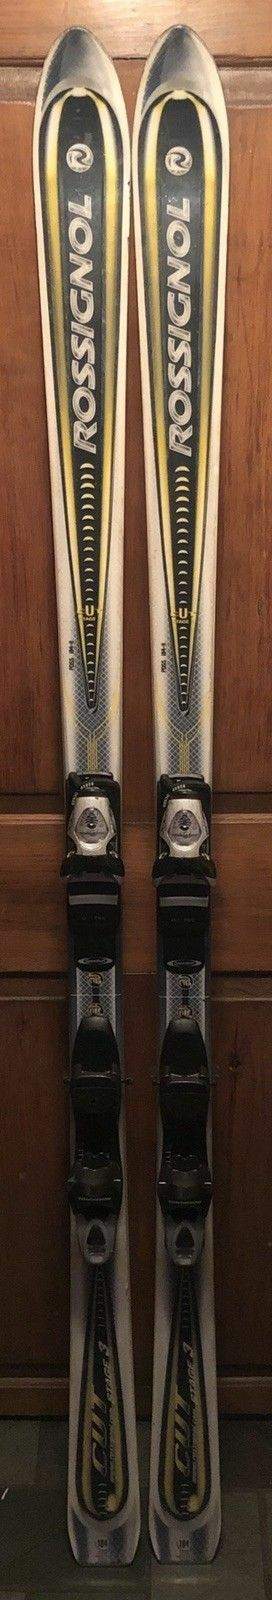 """184 cm Rossignol waxed skis bindings + men's 11.5 boots + never used 52"""" poles"""